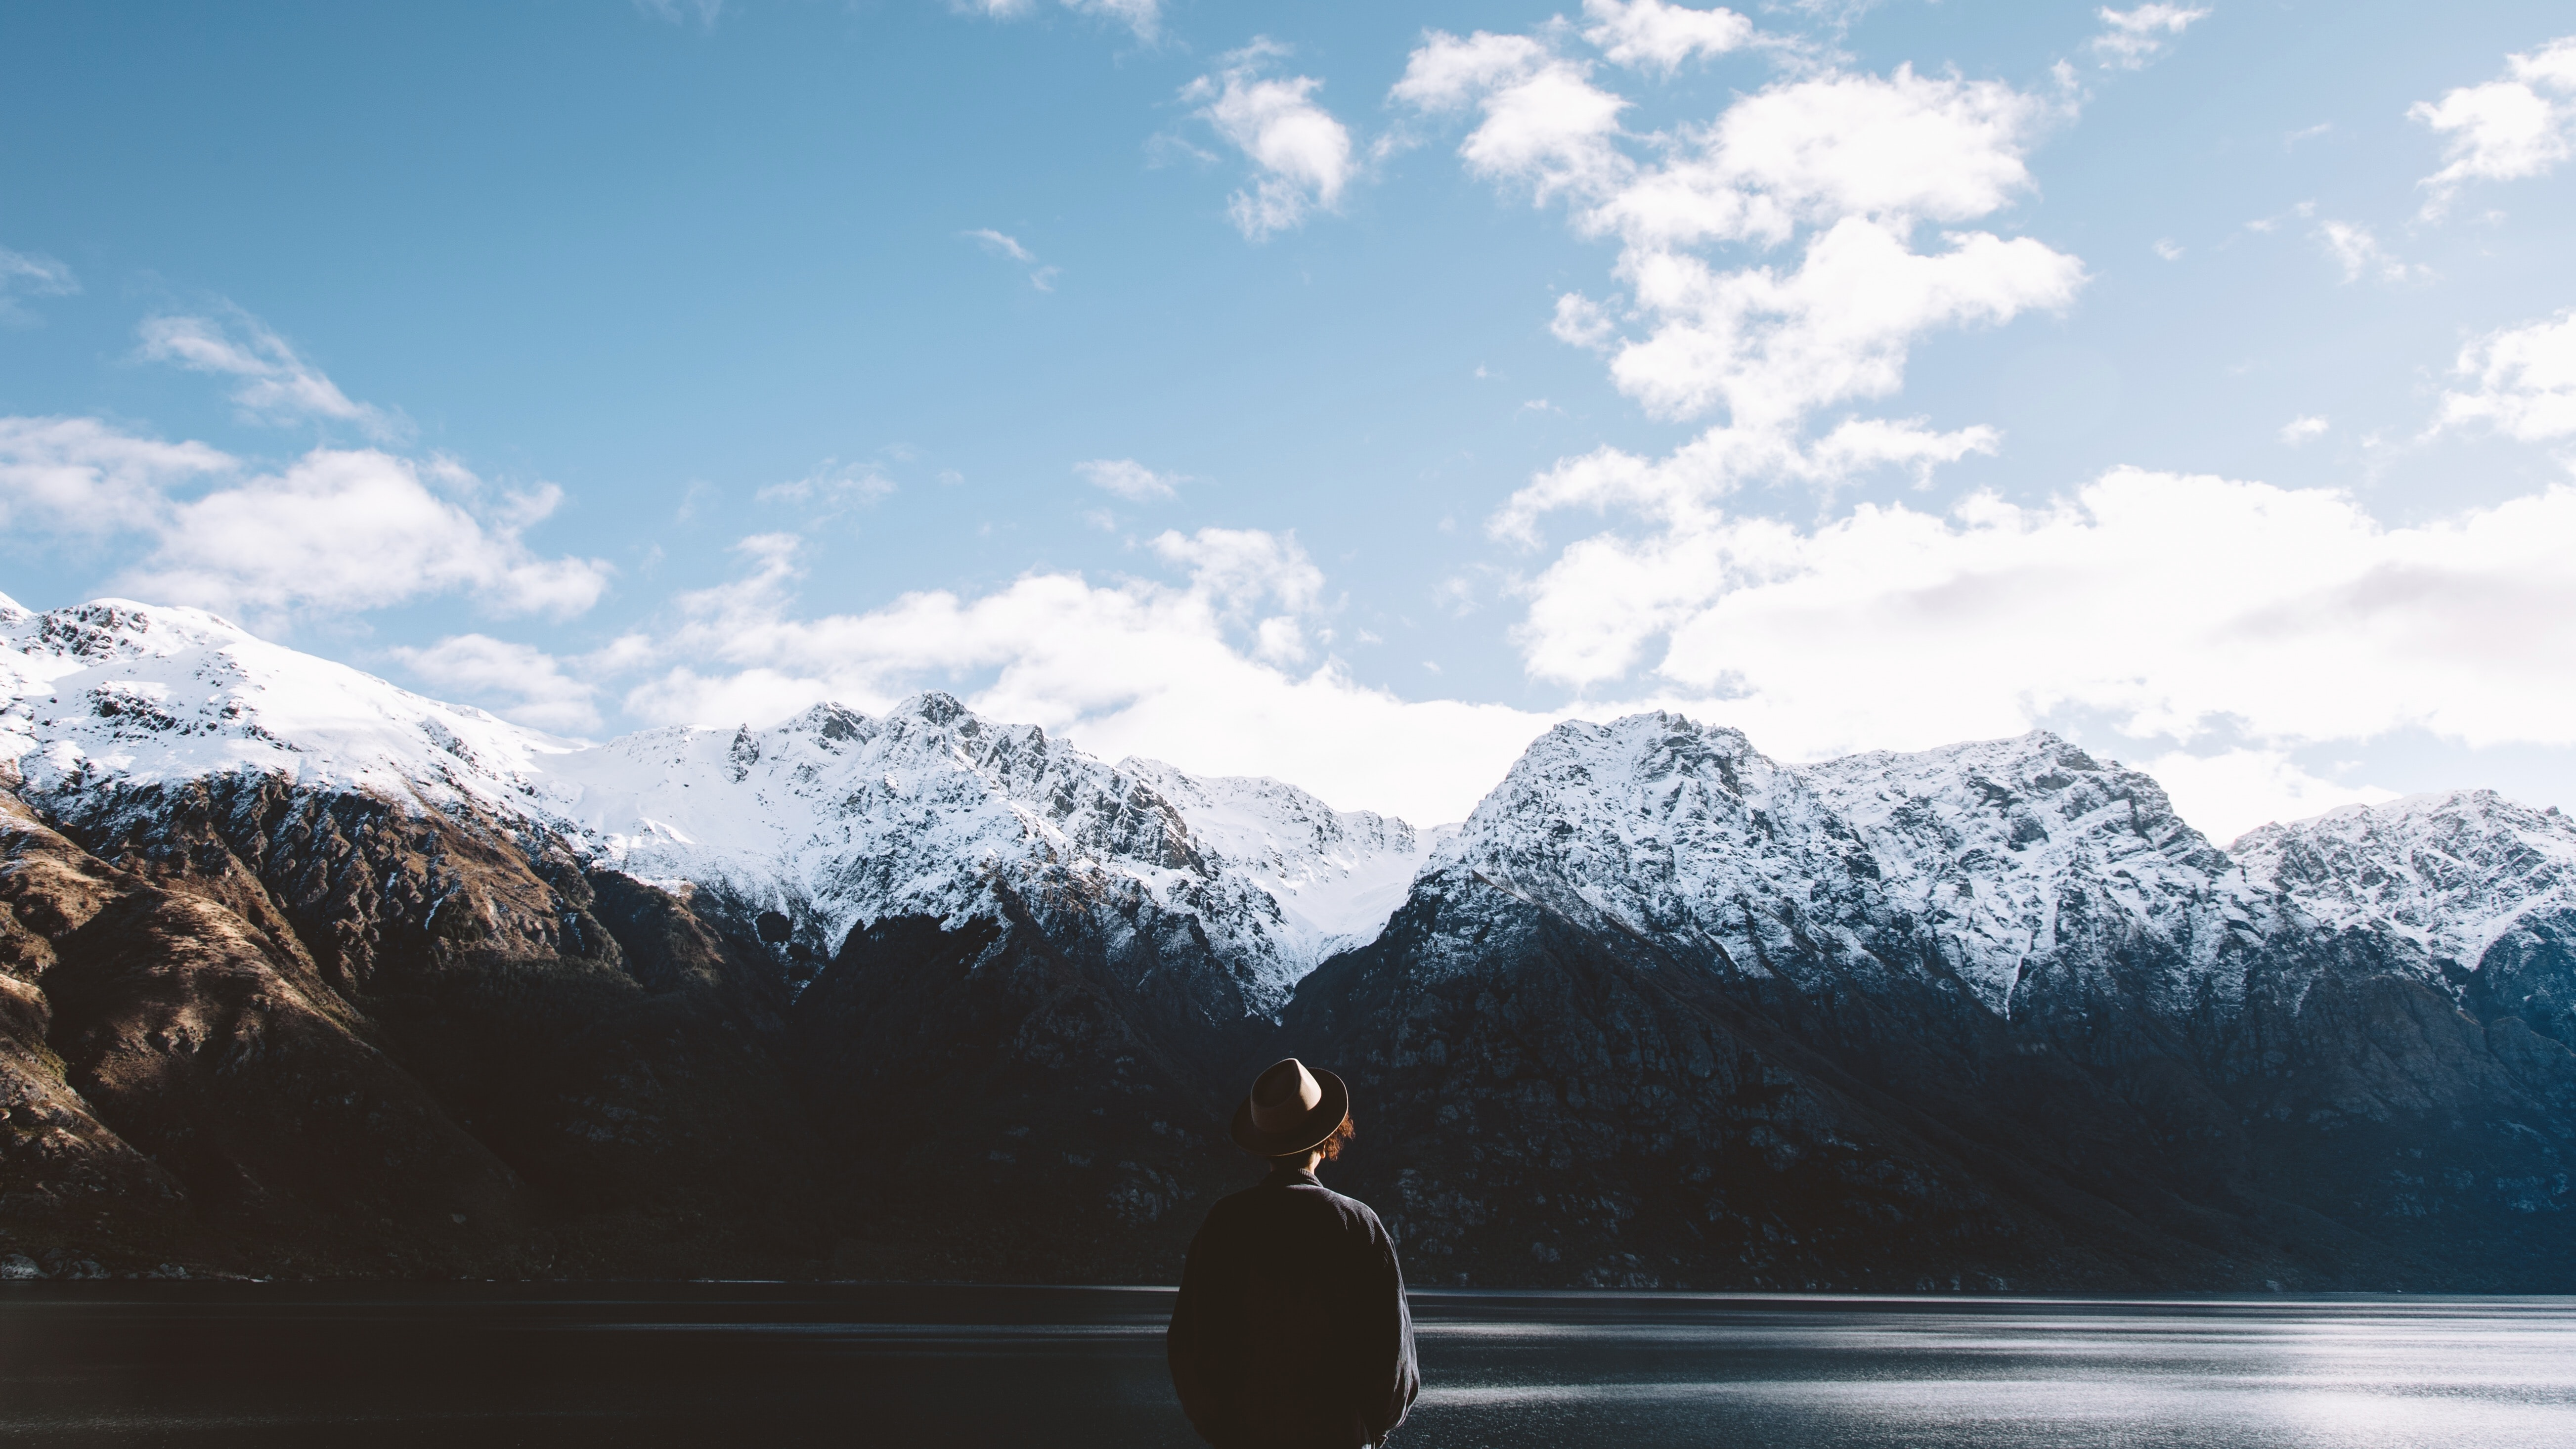 A person in a hat standing on the shore of a lake surrounded by snow-topped mountain ridges